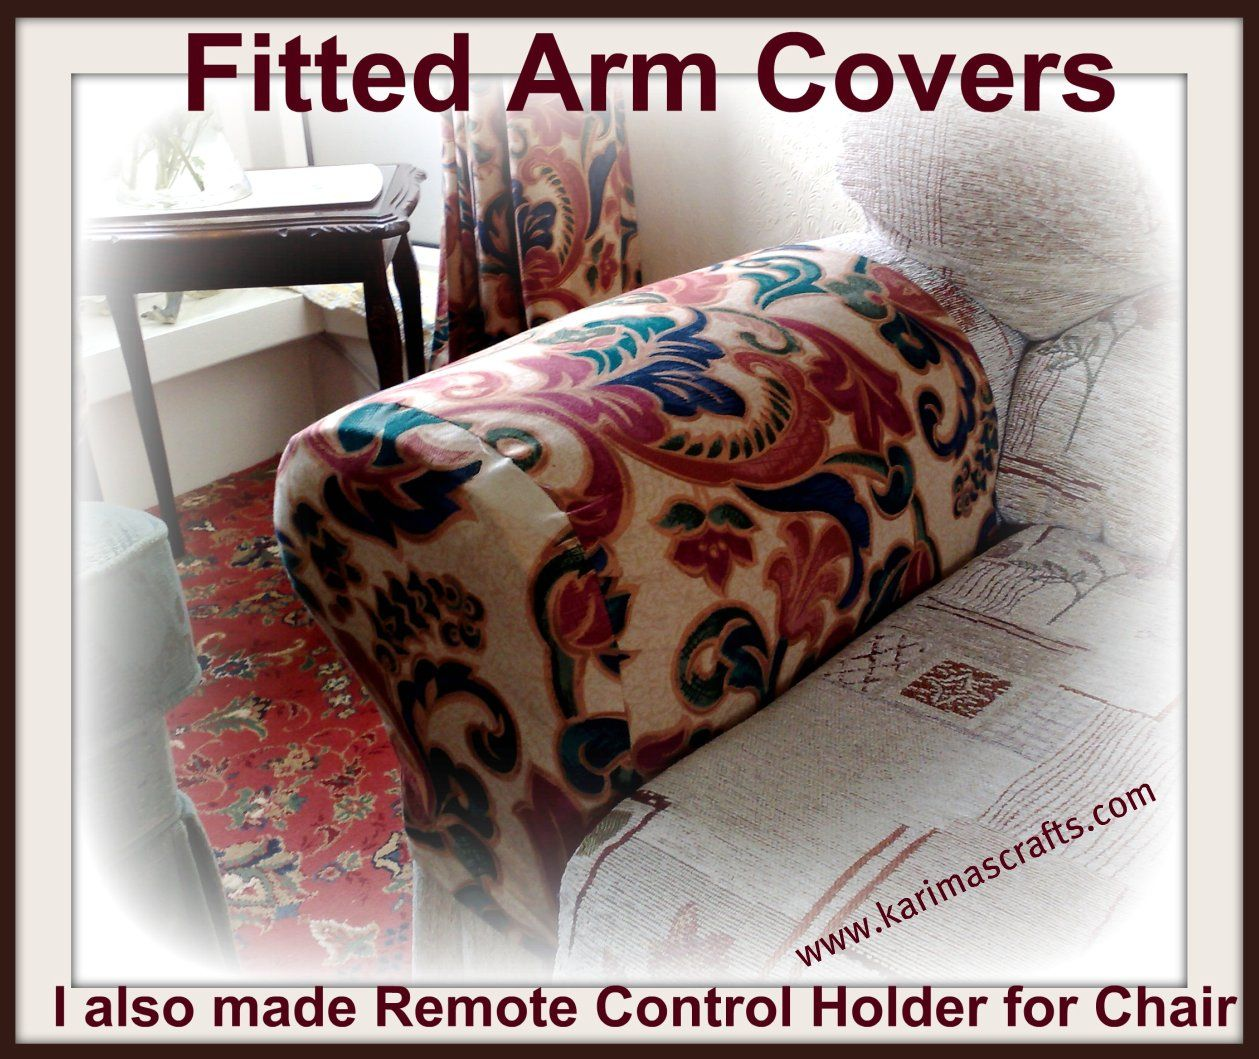 Sofa Cushions Slipcovers Arm Covers For Chairs … | Fun Projects | Couch…